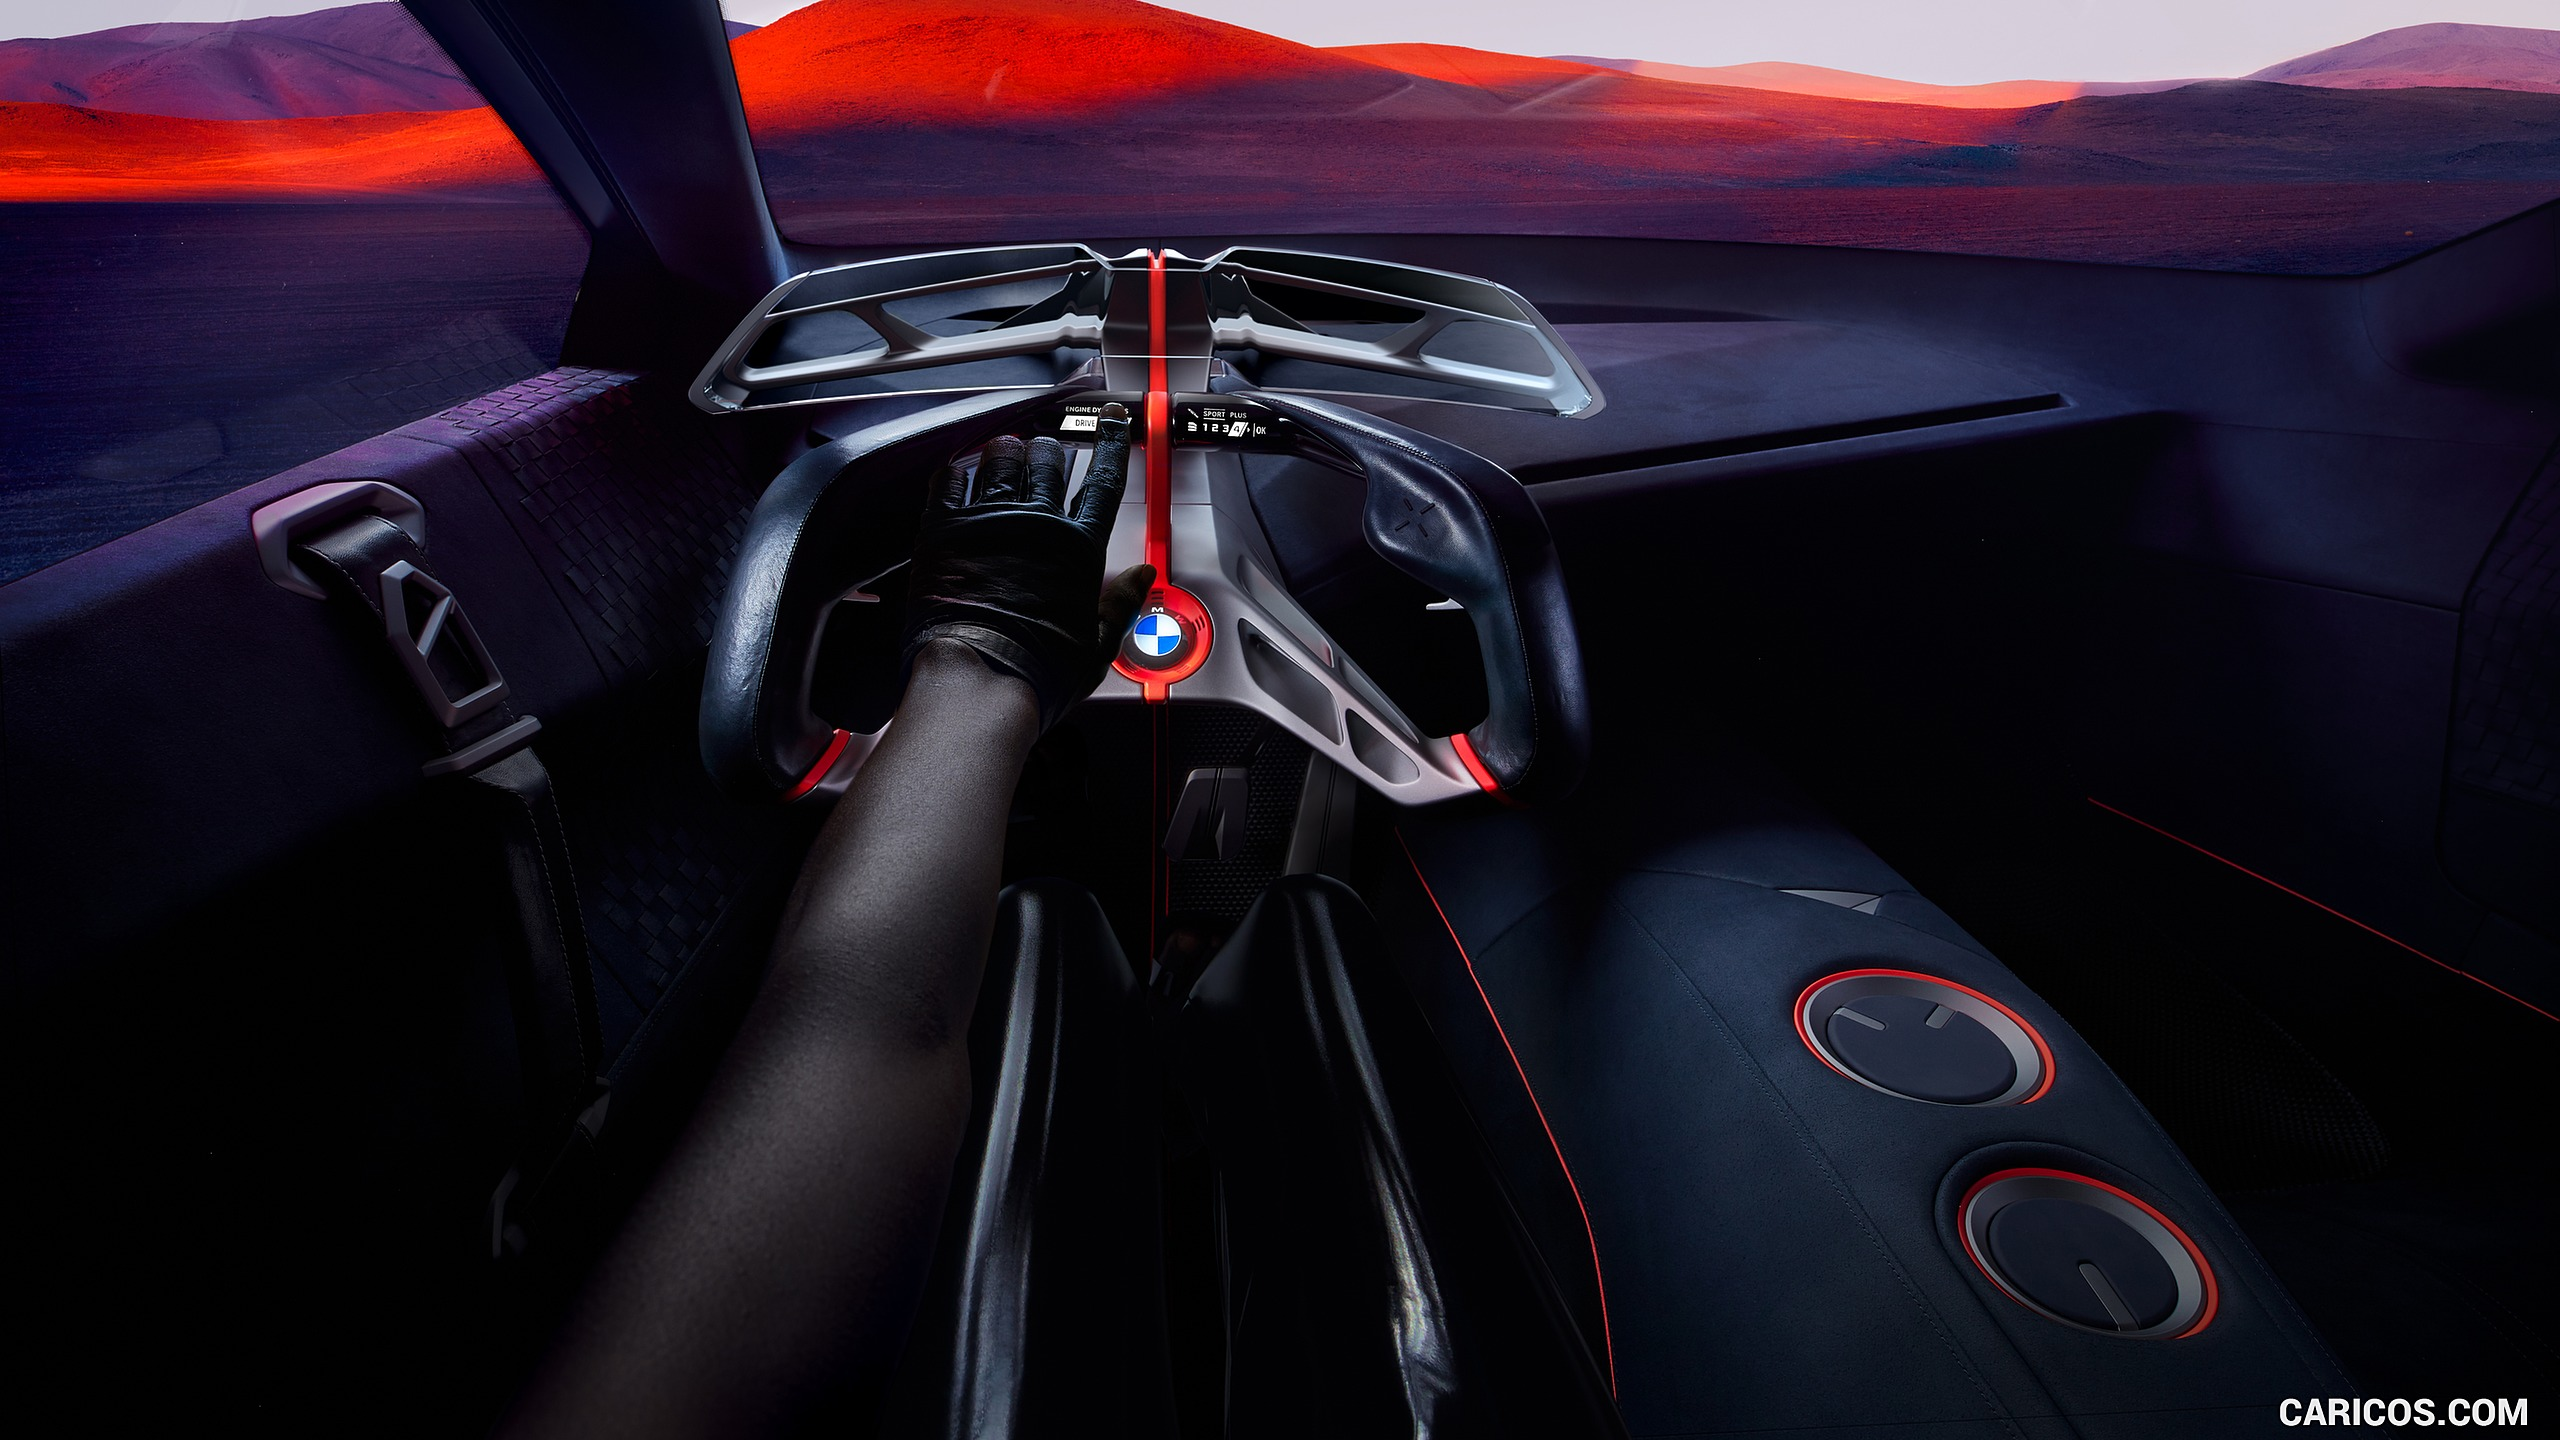 2019 BMW Vision M Next   Interior Cockpit HD Wallpaper 31 2560x1440